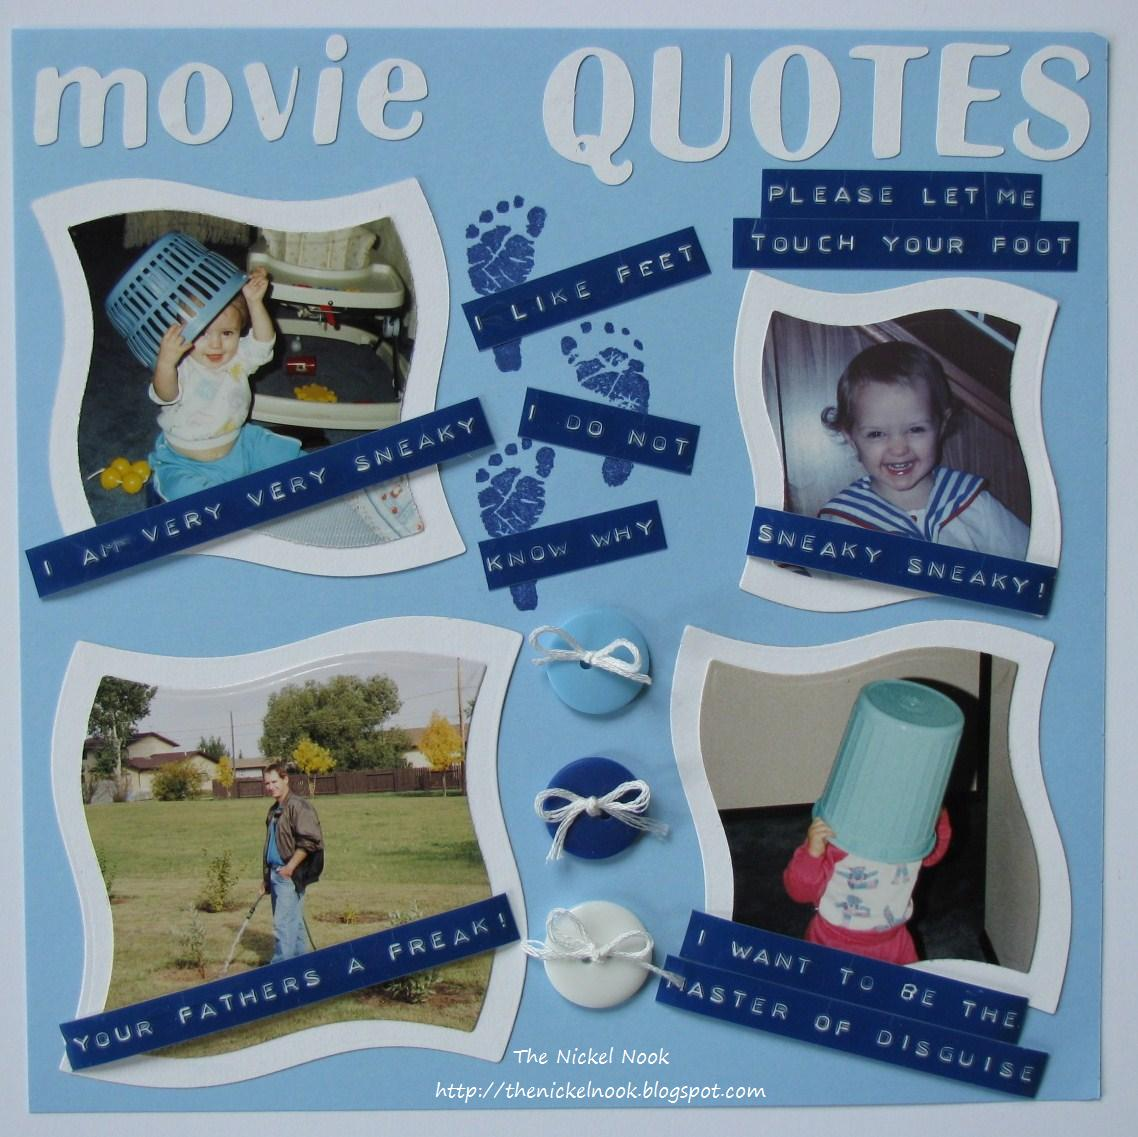 Images Daughter And Father Quotes For Scrapbooking Wallpaper